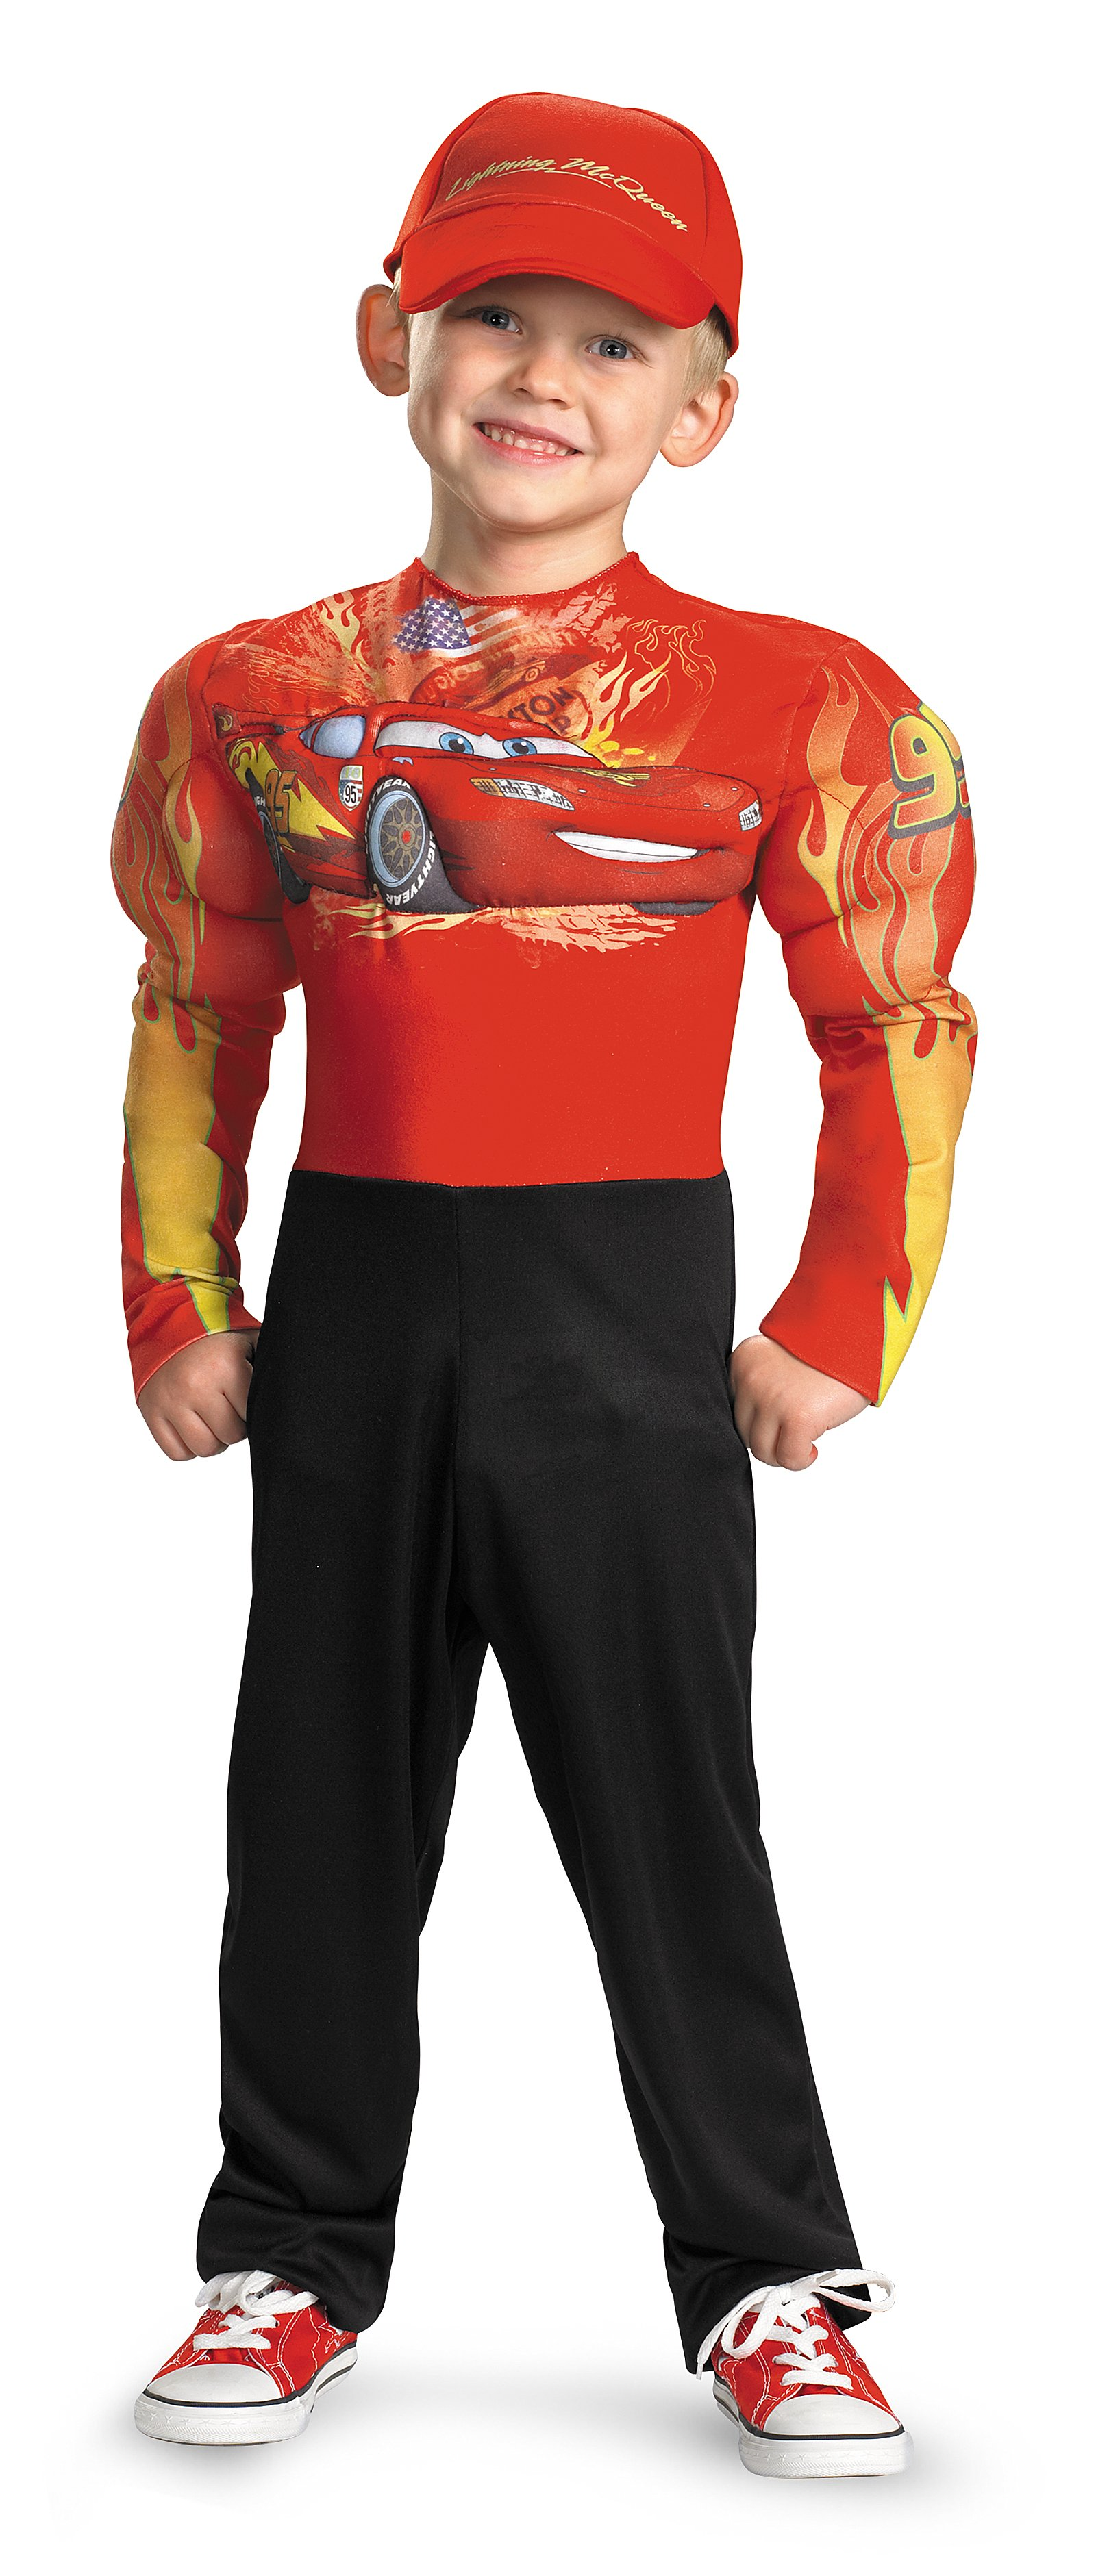 Cars 2 - Lightning McQueen Muscle Toddler / Child Costume